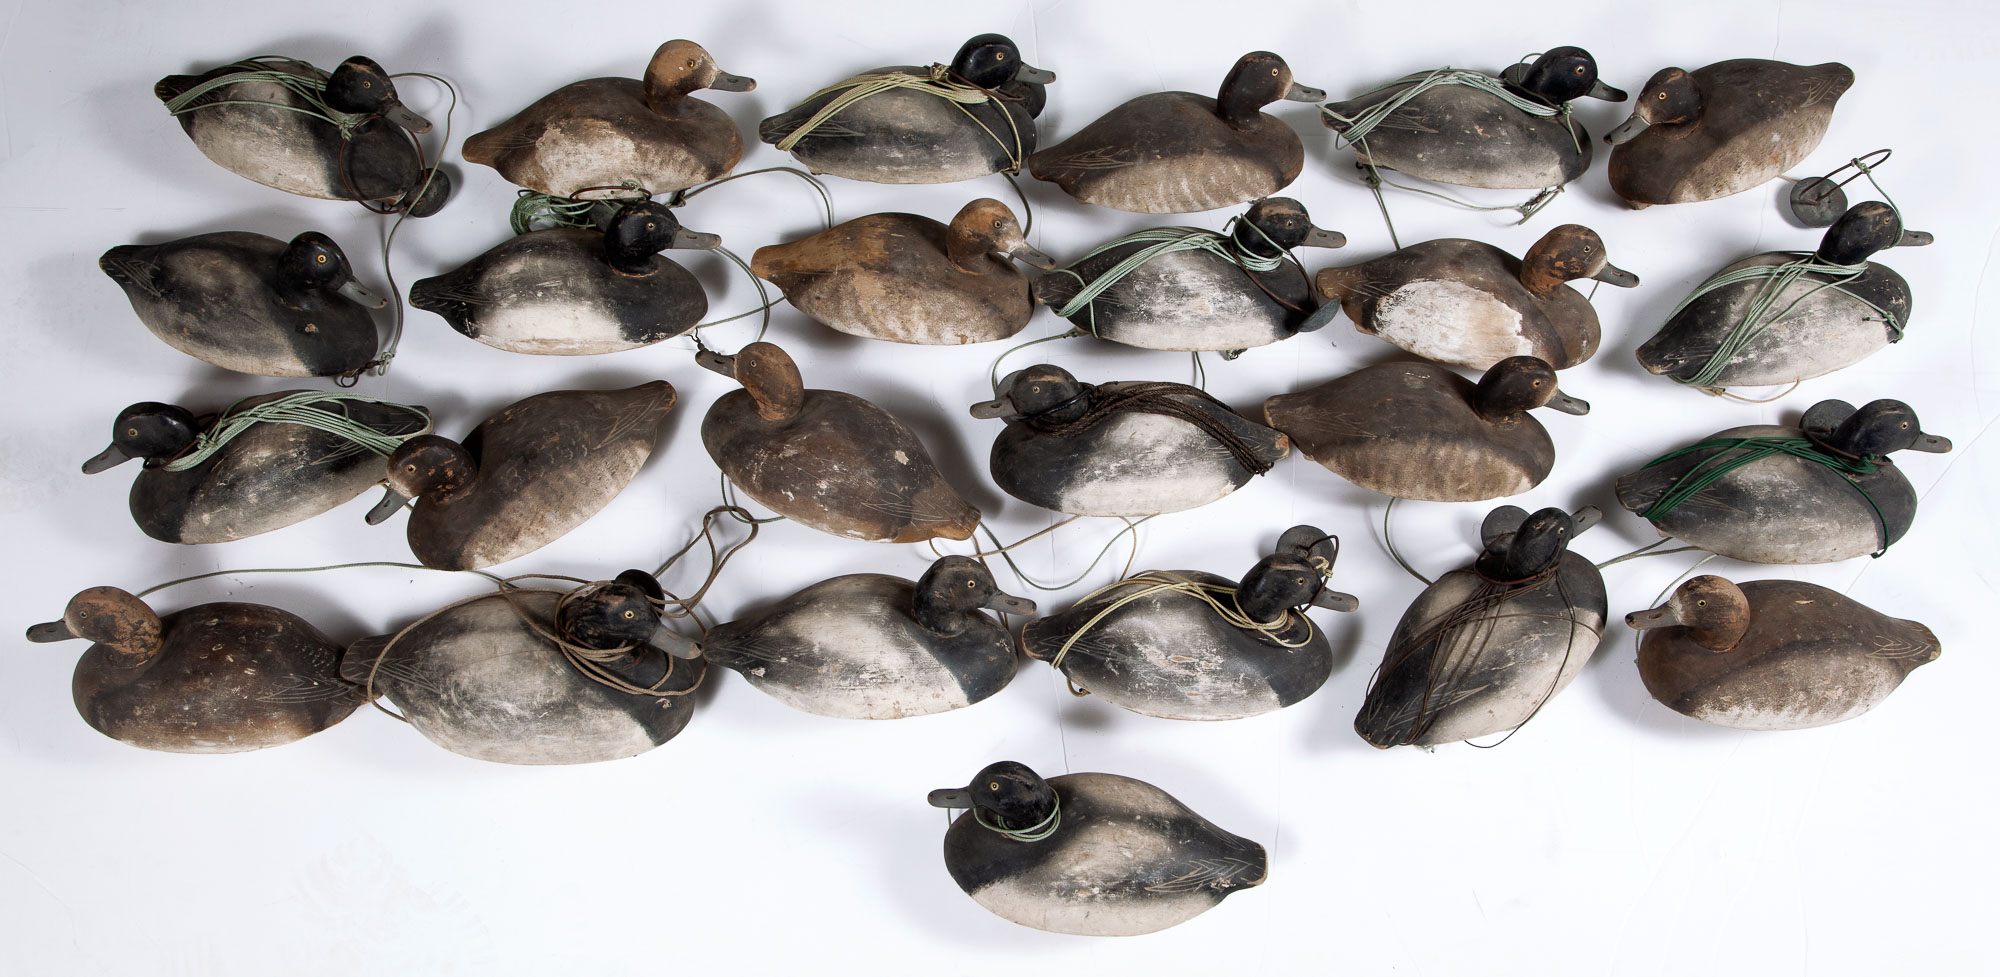 Lot image - LARGE GROUP OF BLUE BILL DUCK DECOYS IN PAIRS  25 carved and painted decoys of likely Blue Bill ducks in male-female pairs.